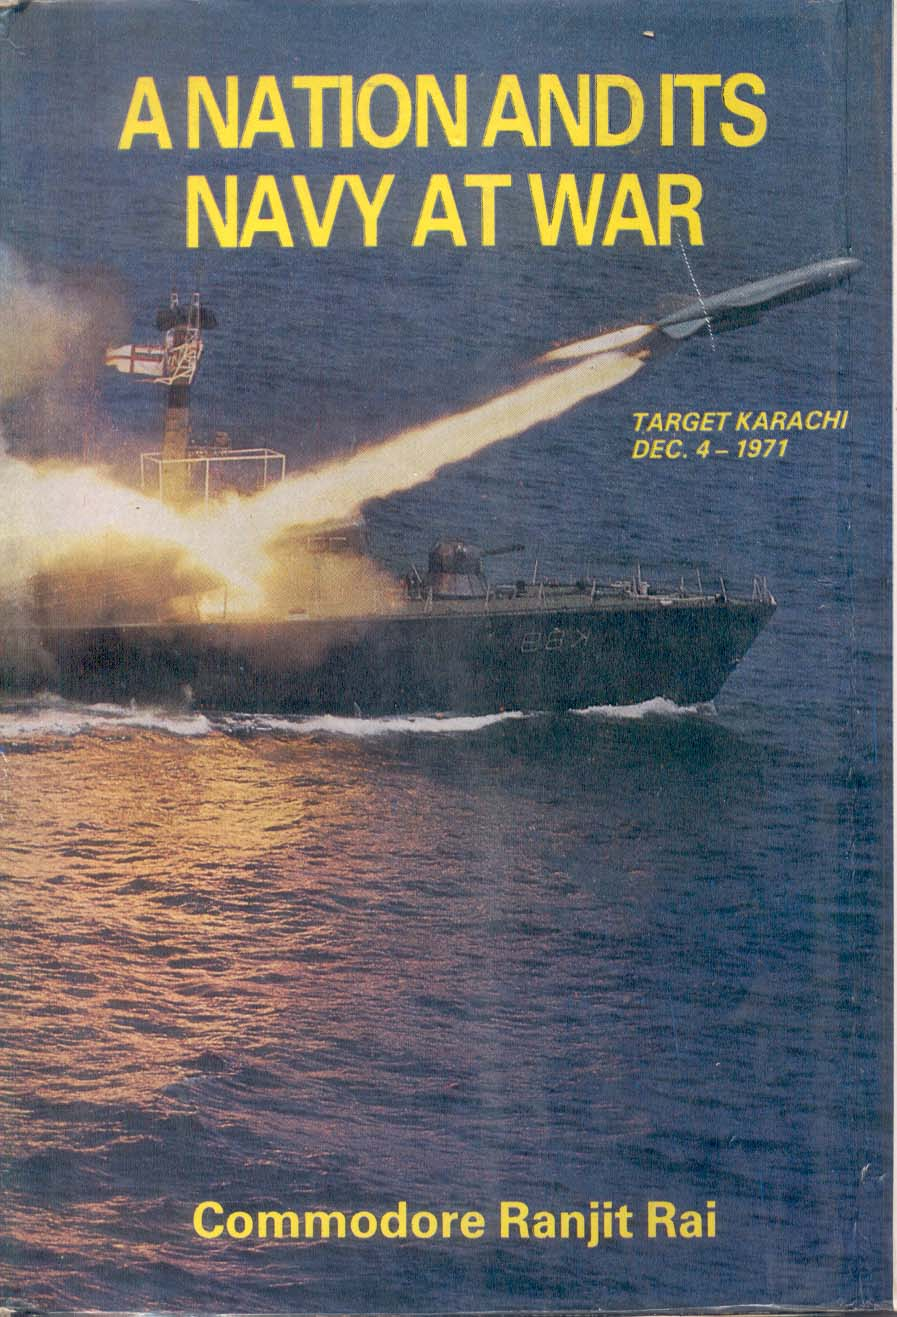 THE UNTOLD STORY OF IAF HUNTERS WHO ATTACKED KEMARI TANKS ON 4 TH DEC 1971 MORNING & K25 MISSILE BOATS ATTACKED THAT SANK SHIPS BUT NIGHT MISSED KEMARI IN OP TRIDENT & ON 8 TH IN OP PYTHON JERATH ON RE LIT KEMARI TANKS